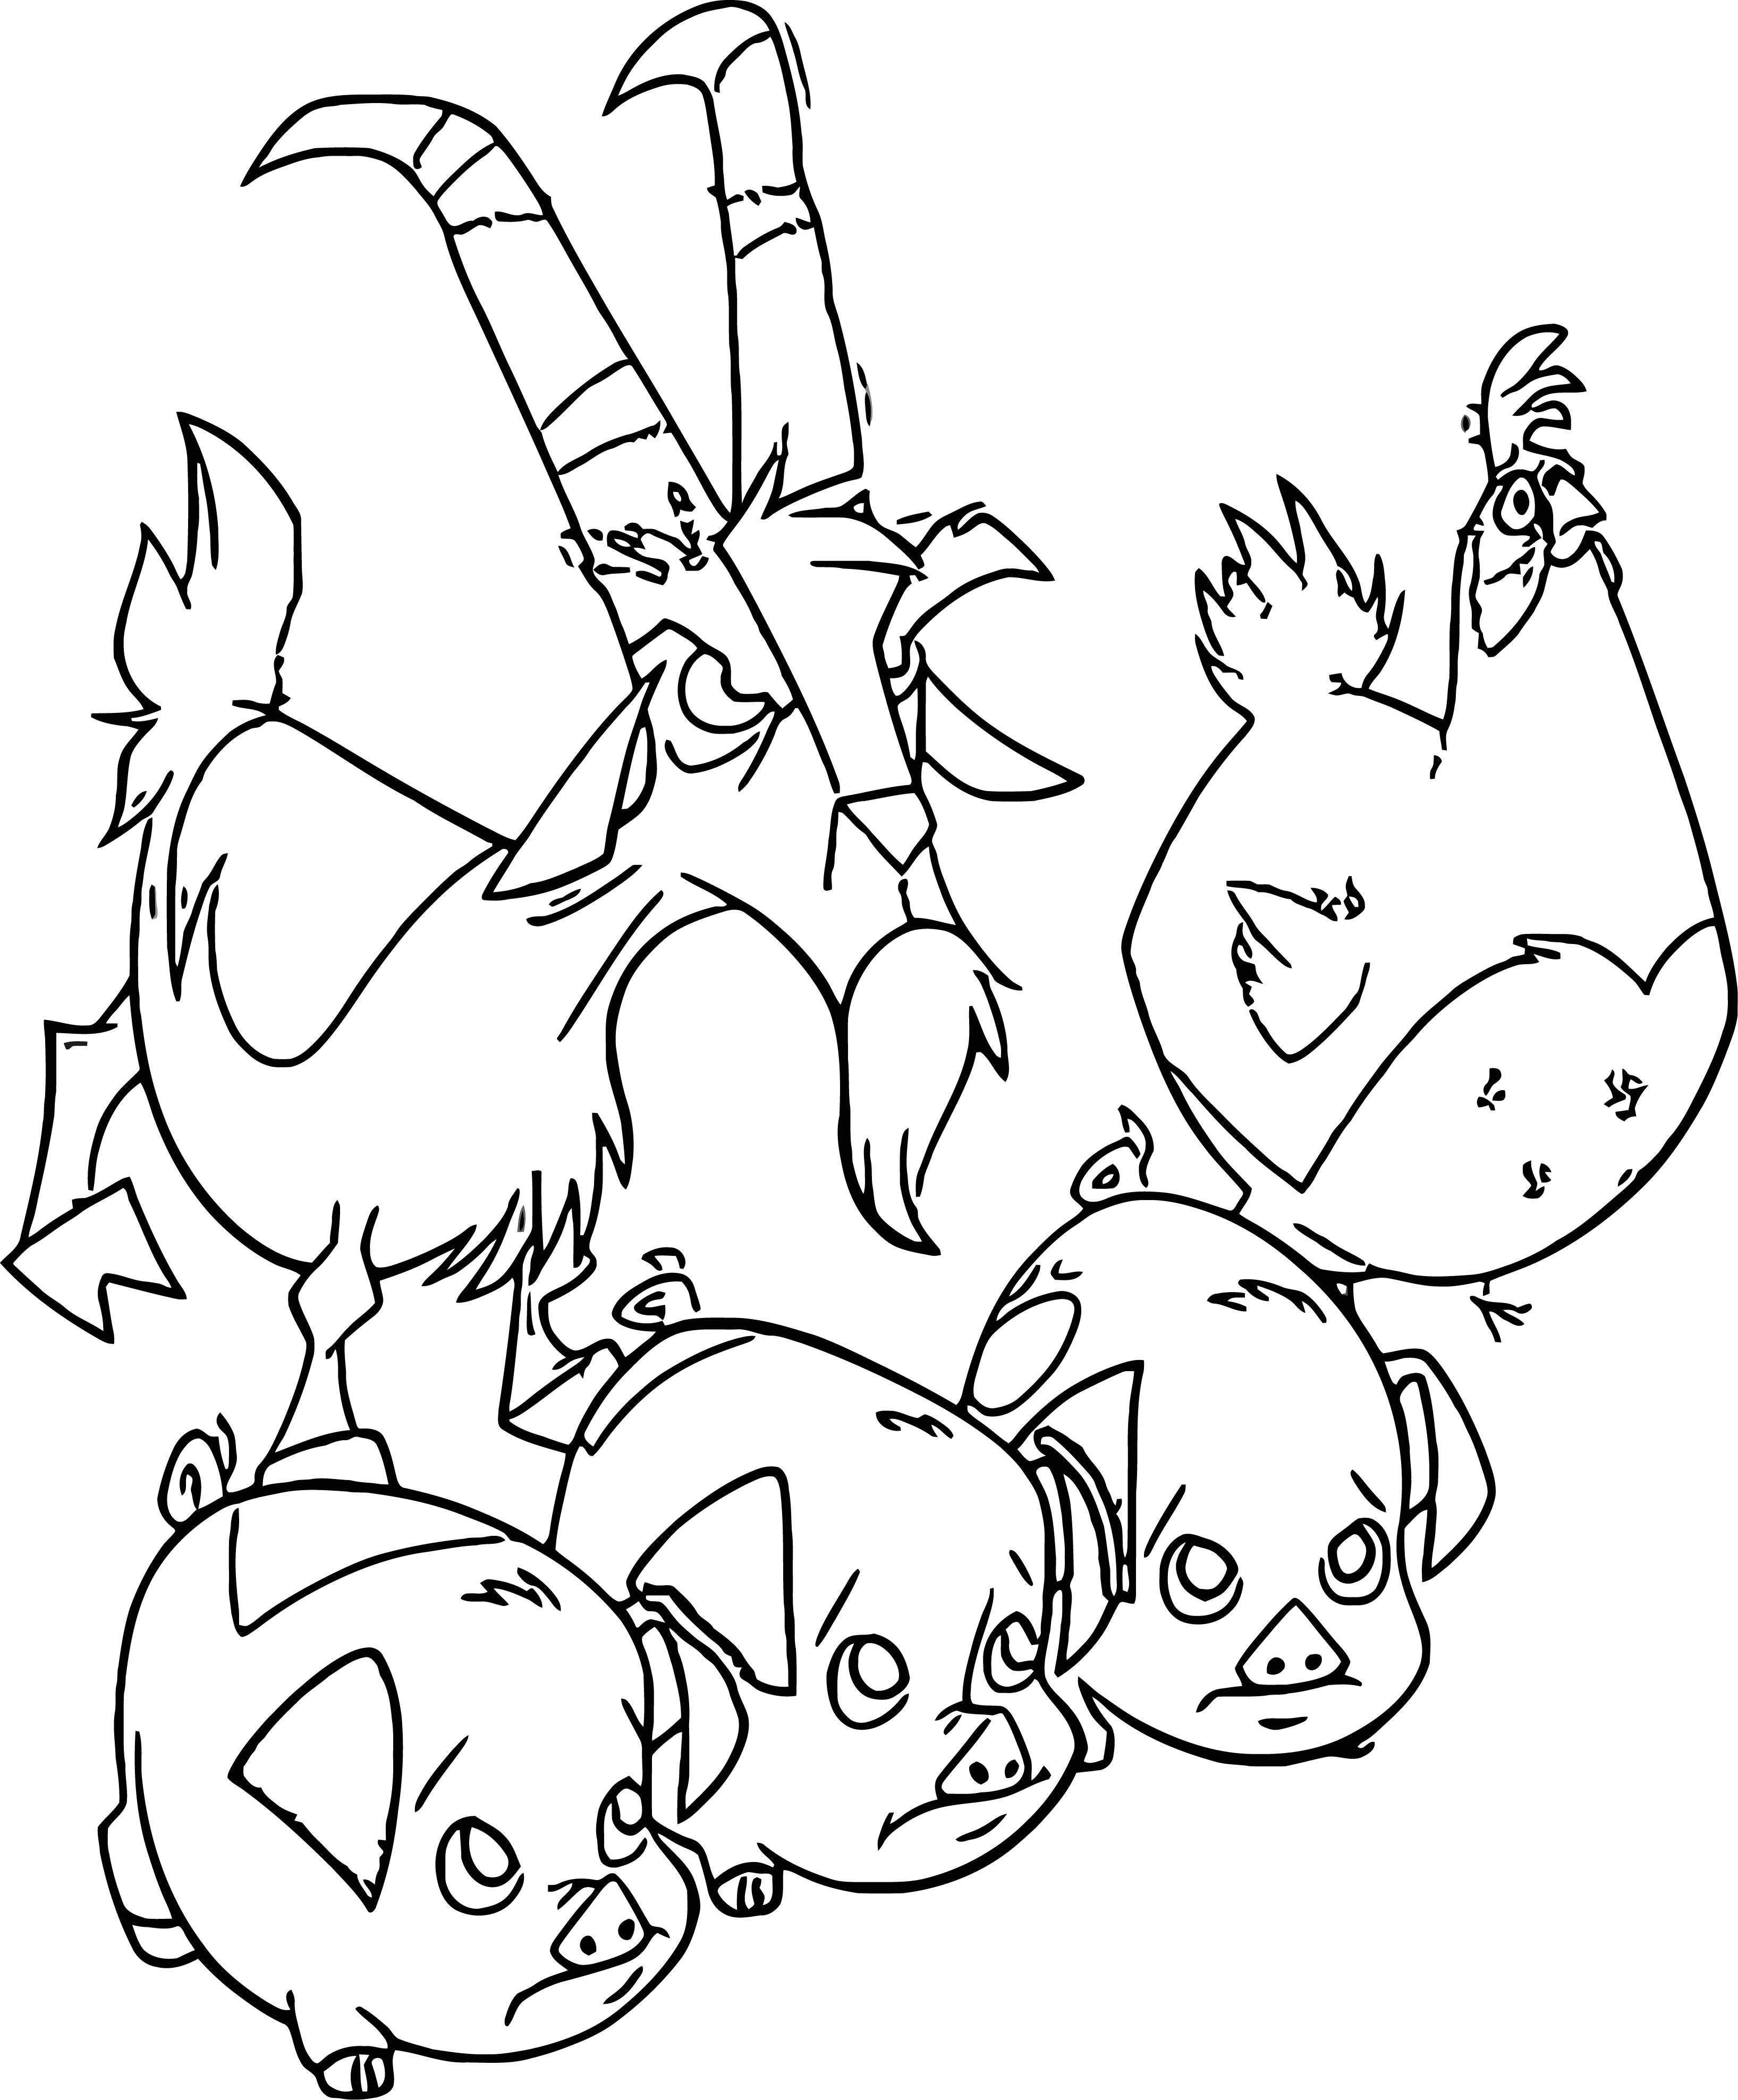 Home On The Range Animals Coloring Page